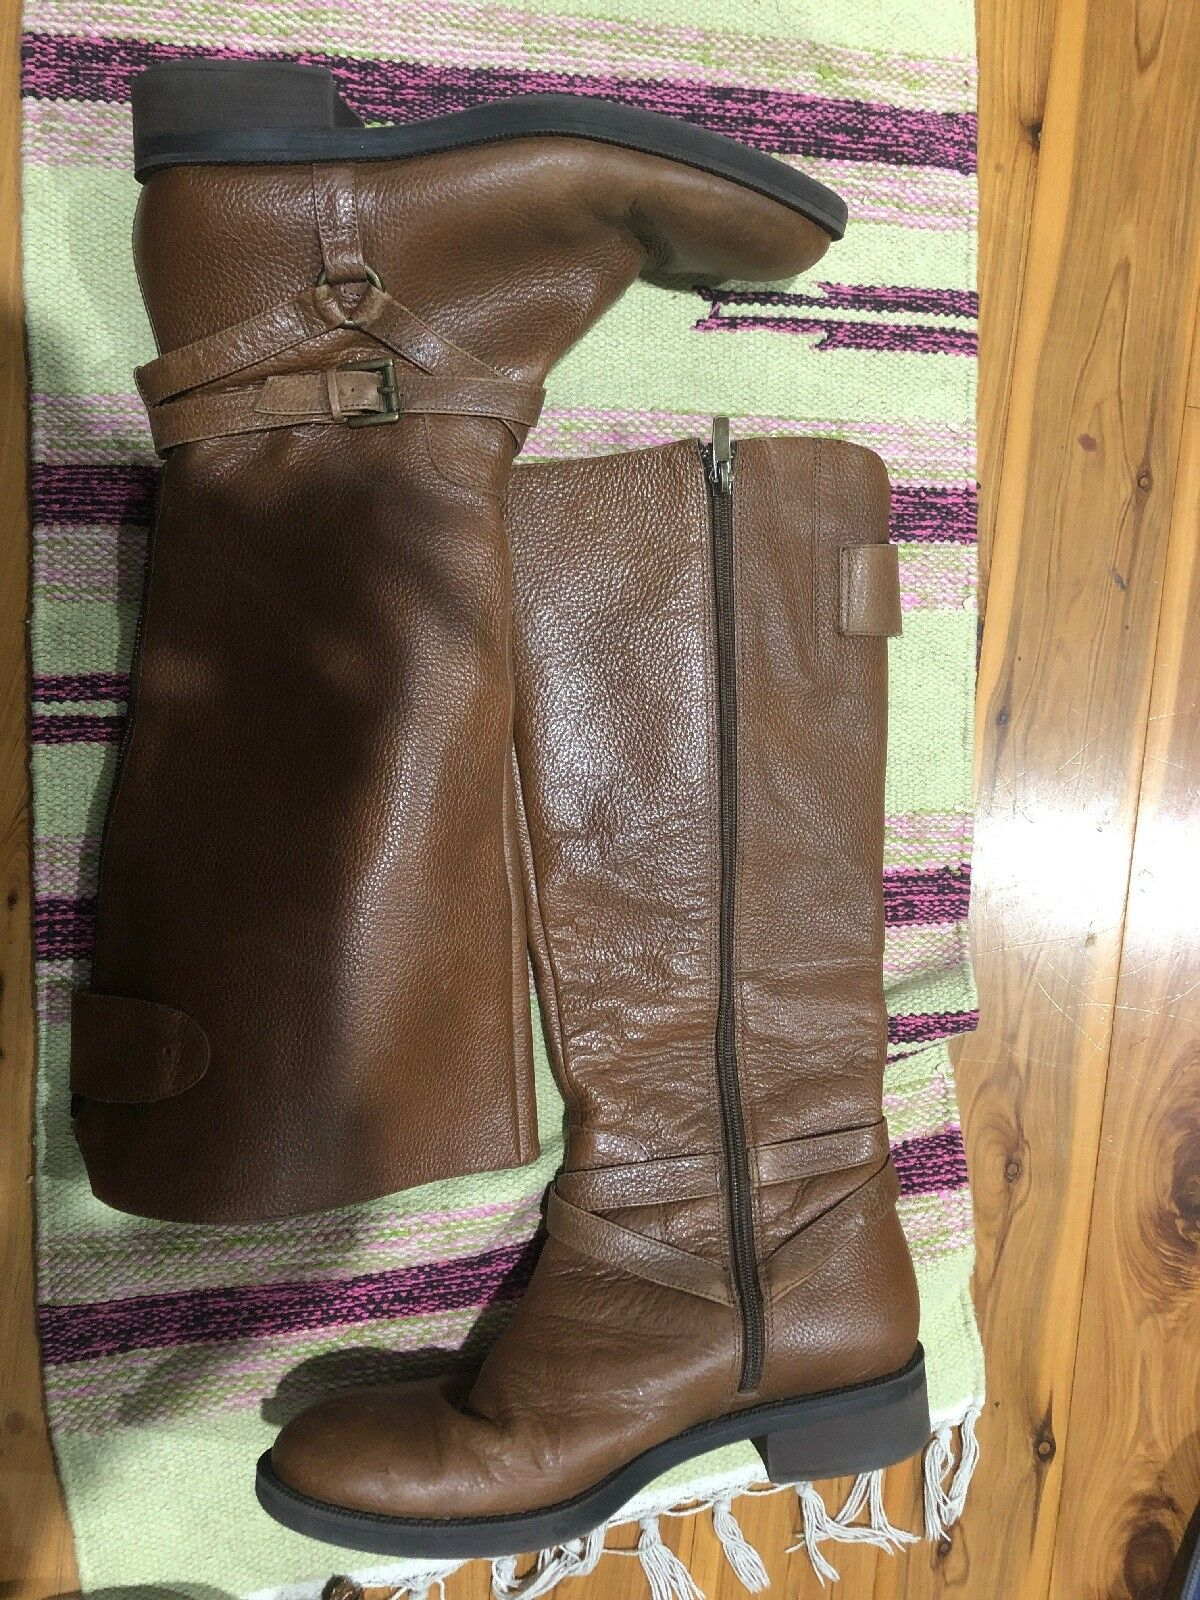 Women's 9 Enzo Angiolini Easaevon Brown Leather Tall Knee High Riding Boots